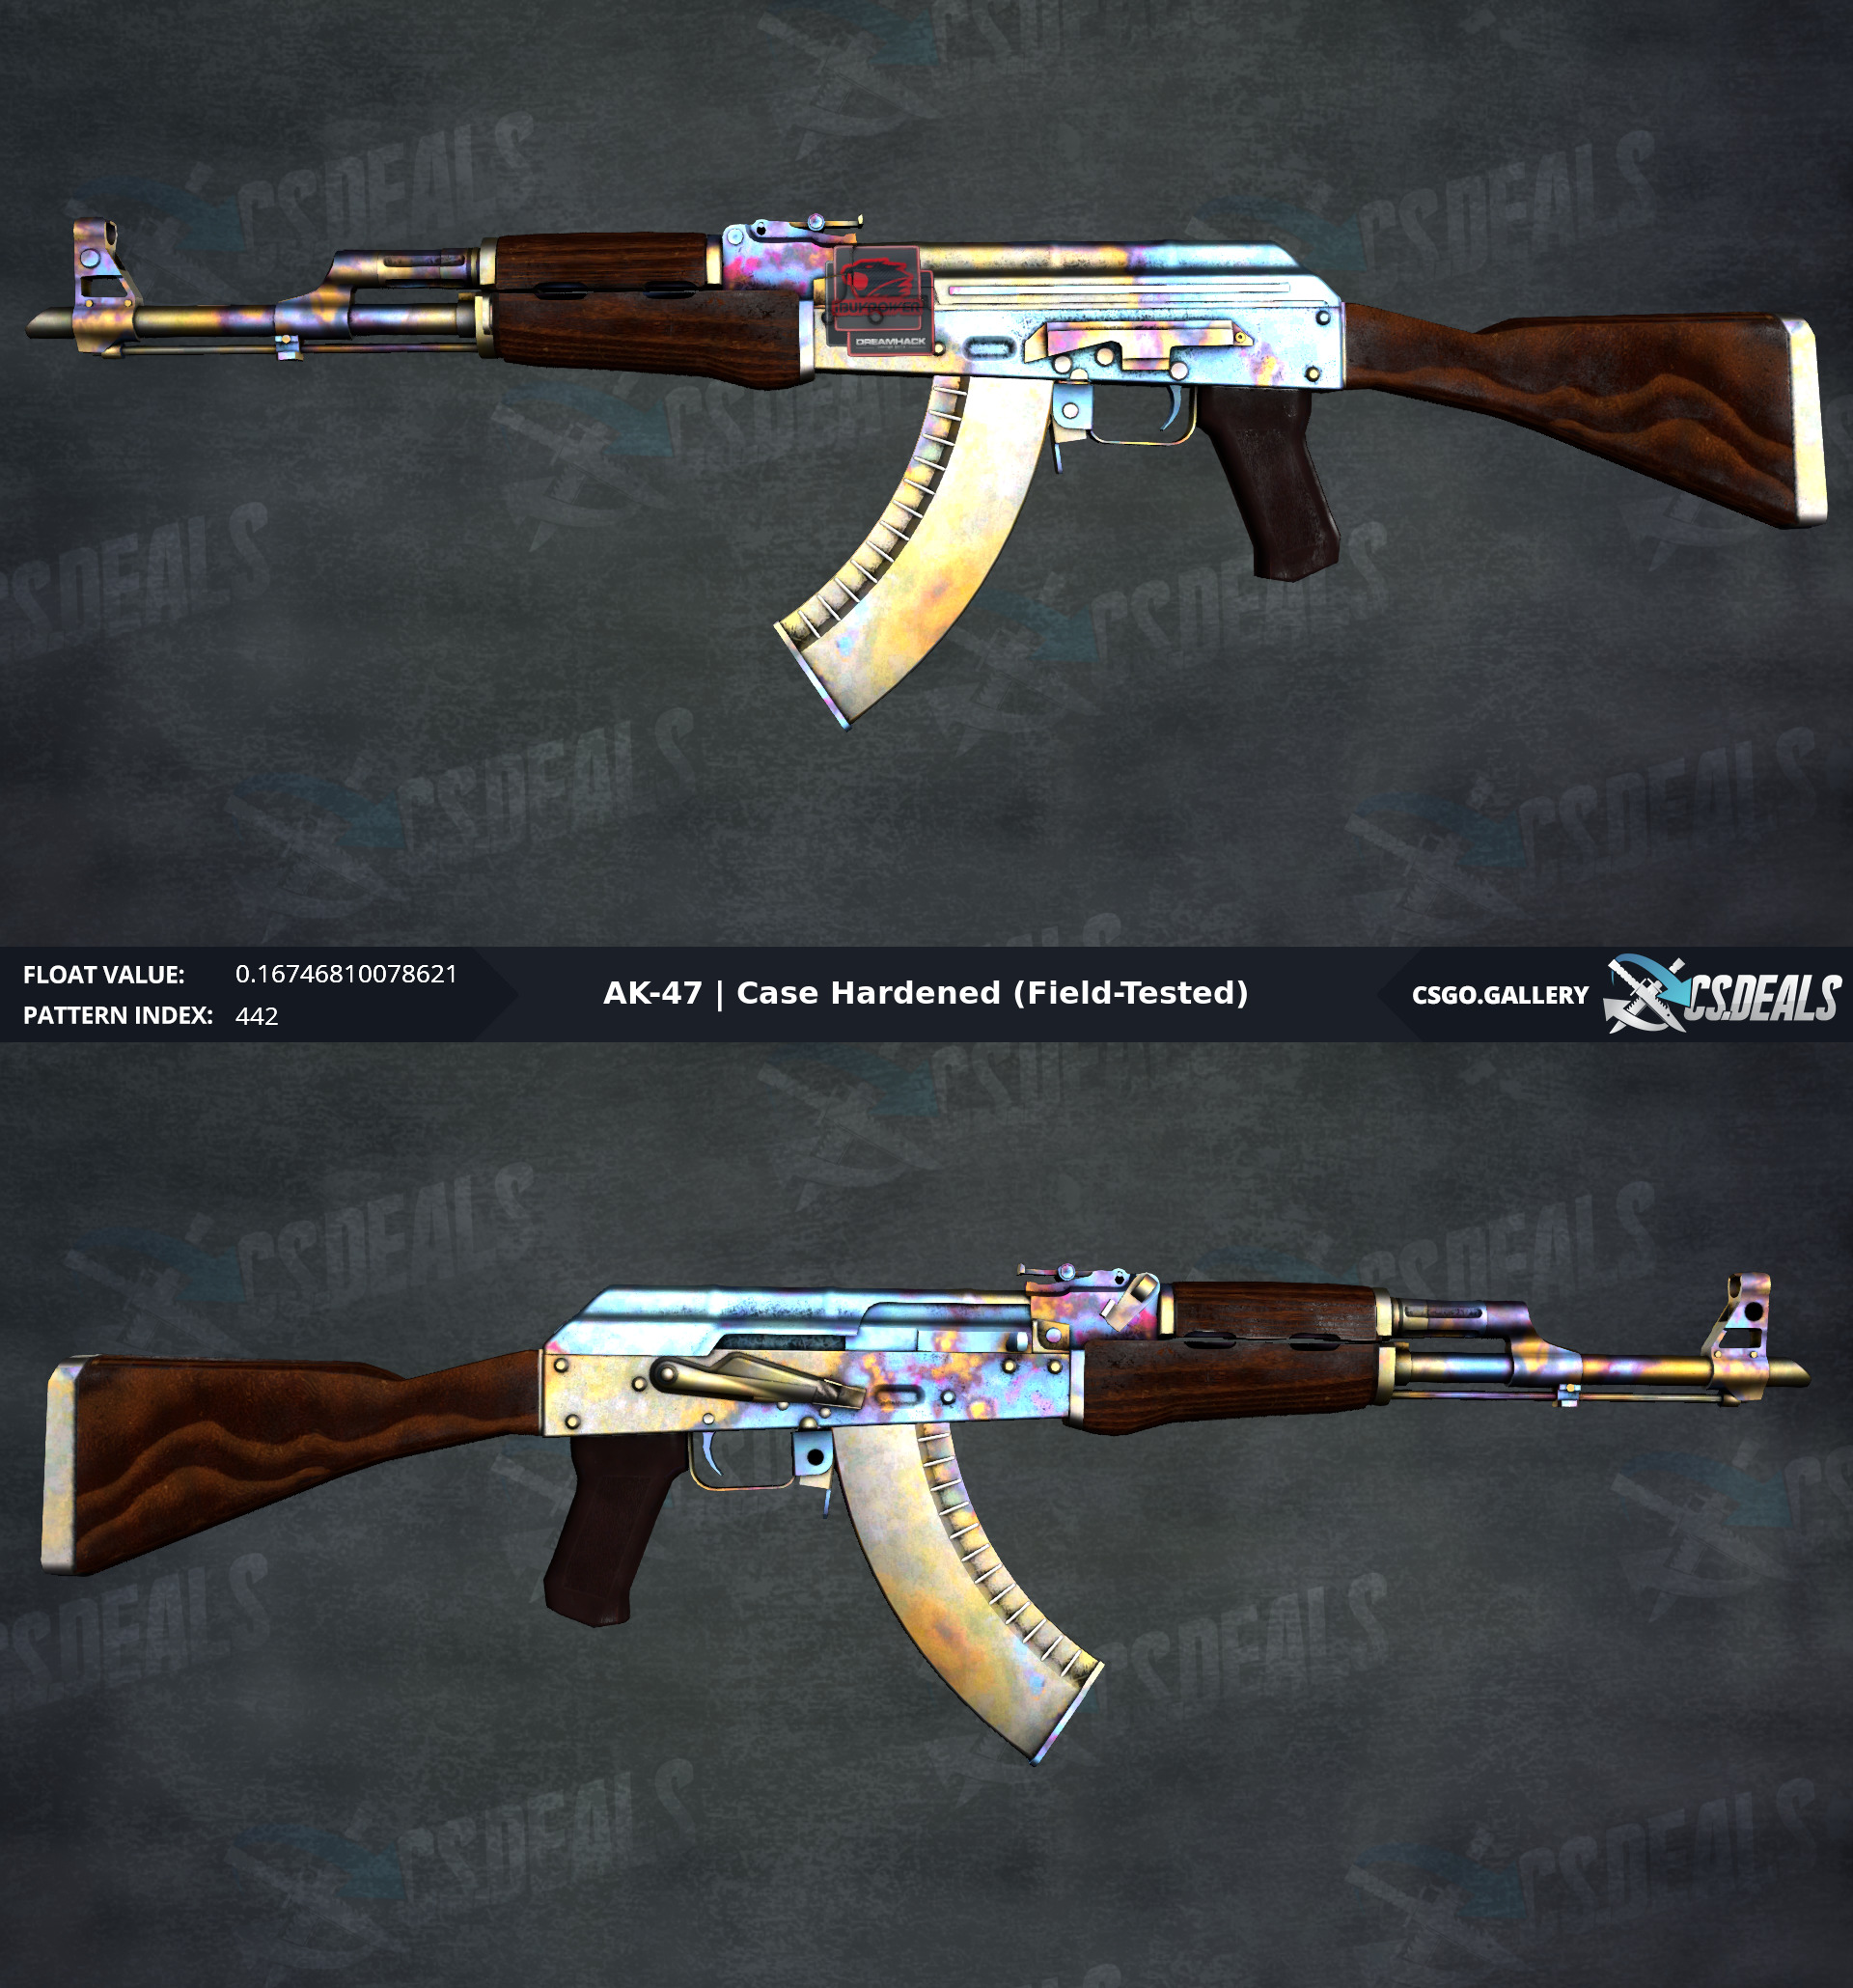 H] FT AK case Hardened, (#442, 0 17 (full blue butt) ) [W] 3